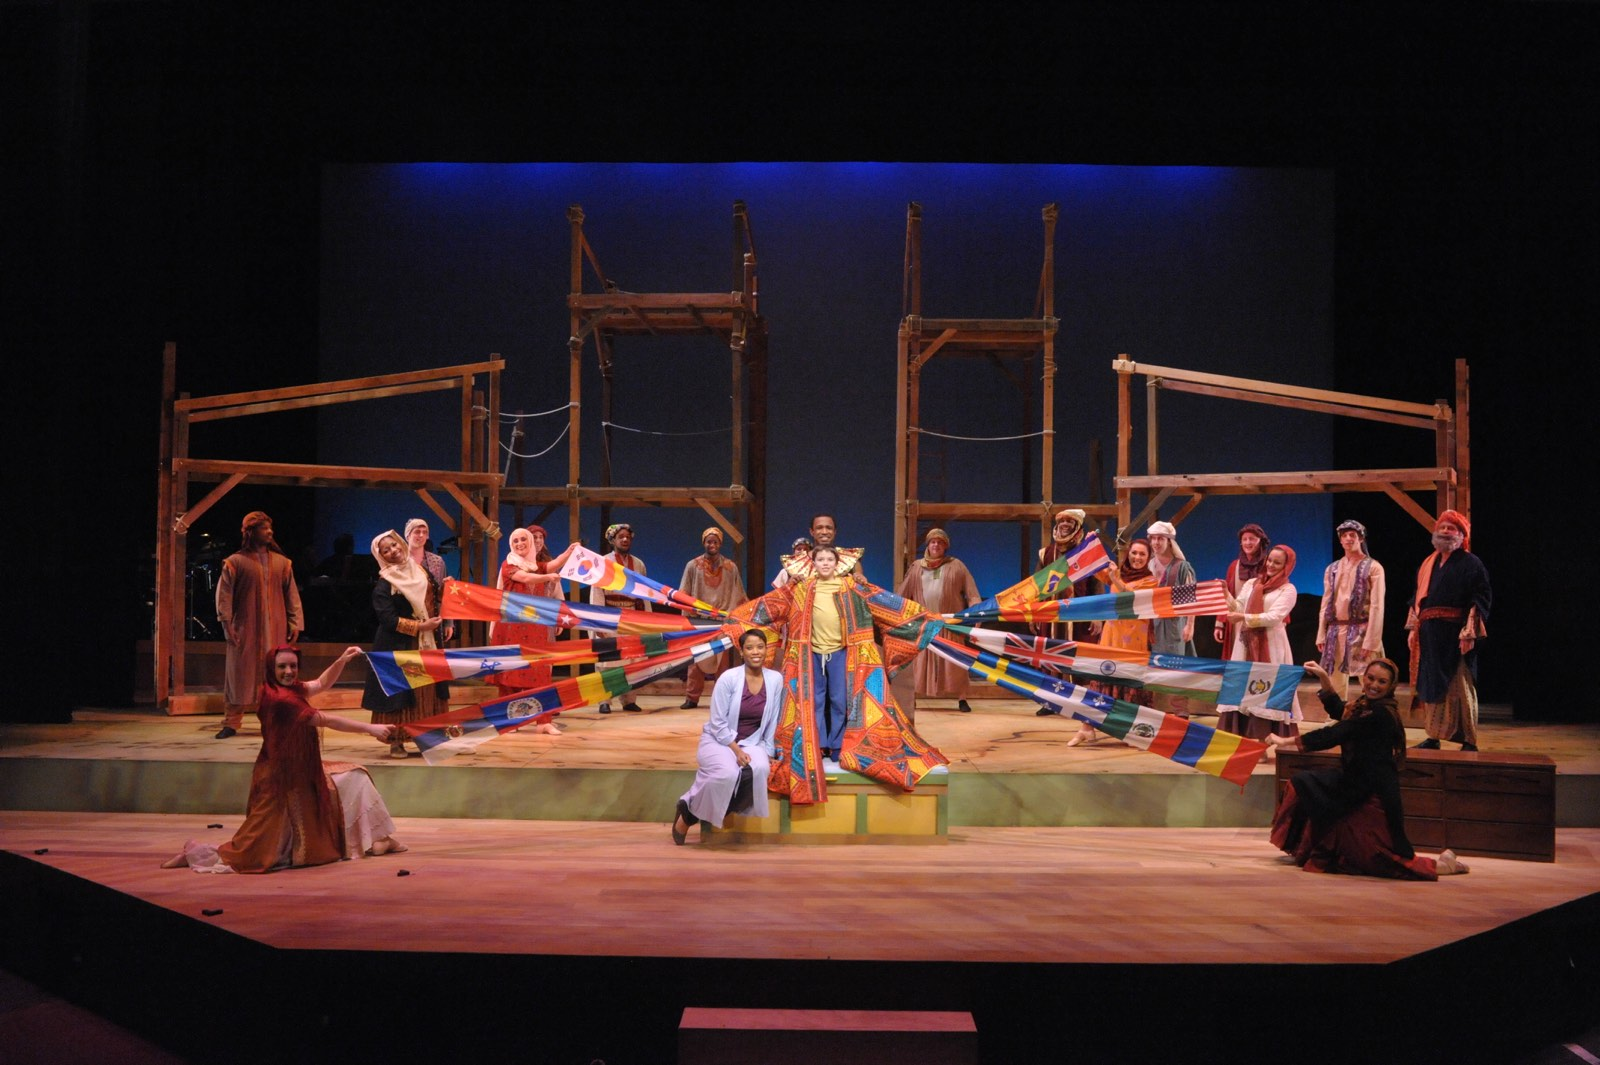 JOSEPH AND THE AMAZING TECHNICOLOR DREAMCOAT - The company<br>Set design by Eugenia Furneaux, Lighting by Dan Covey, Costumes by Ivania Stack - photo by Stan Barouh